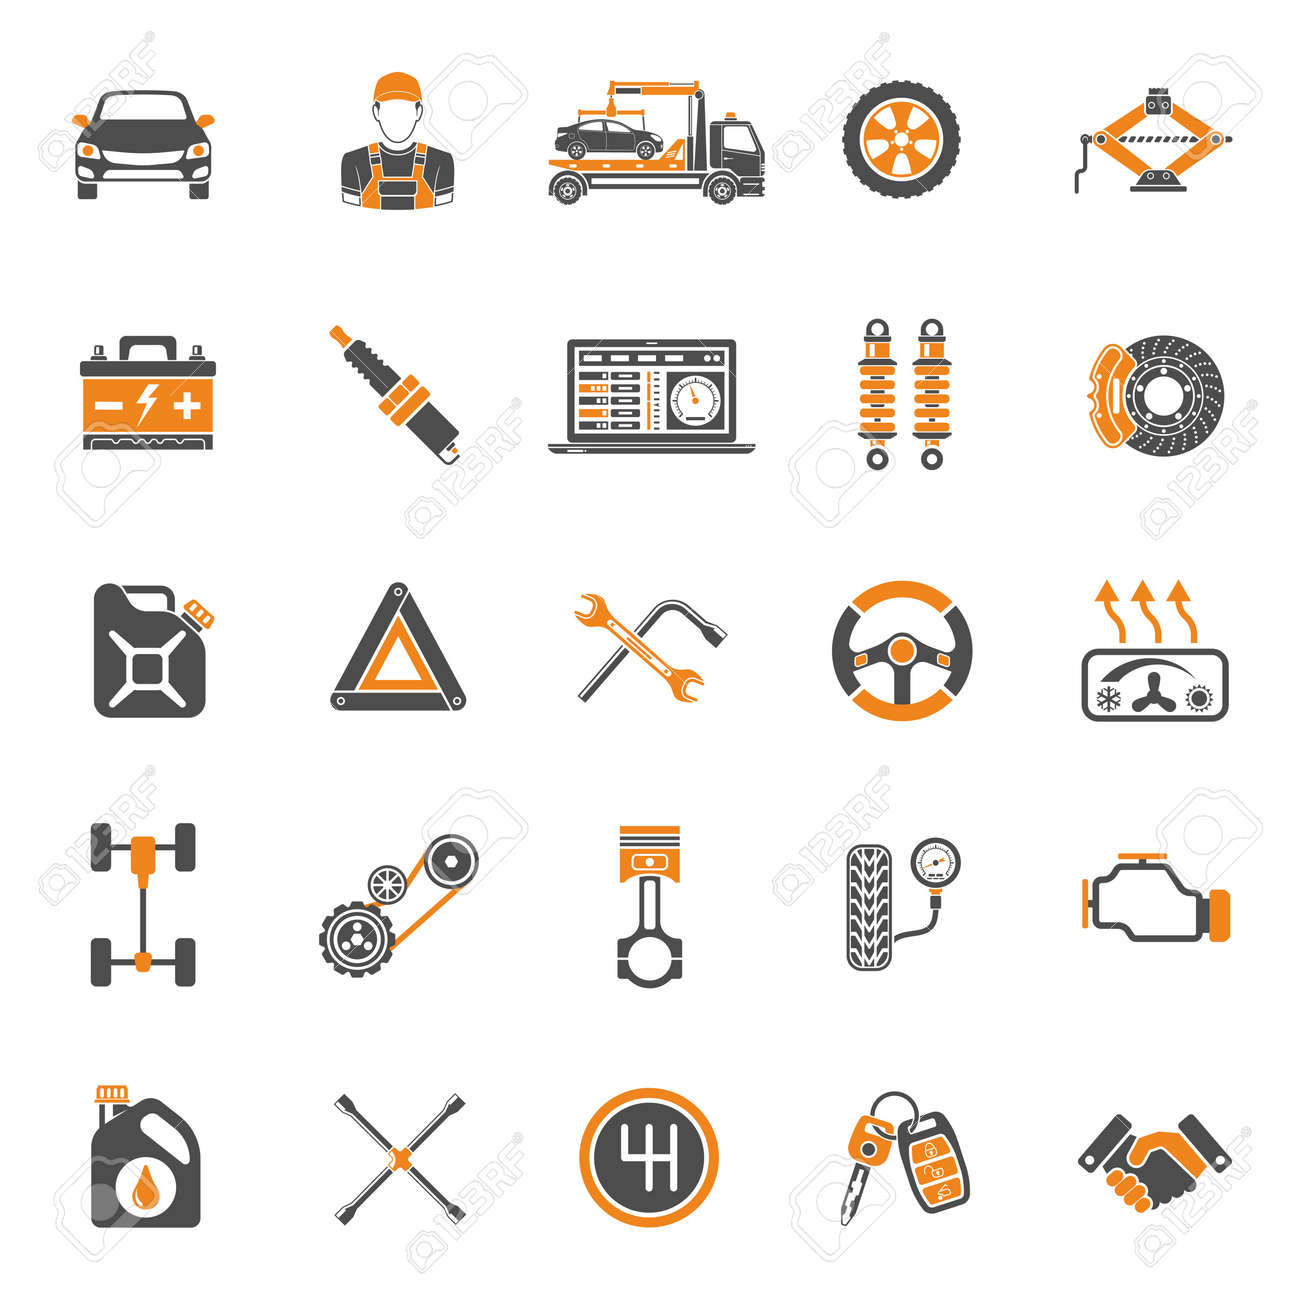 Car Service Two Color Icons Set for Poster, Web Site, Advertising like Laptop, Battery, Jack, Mechanic. - 55679961